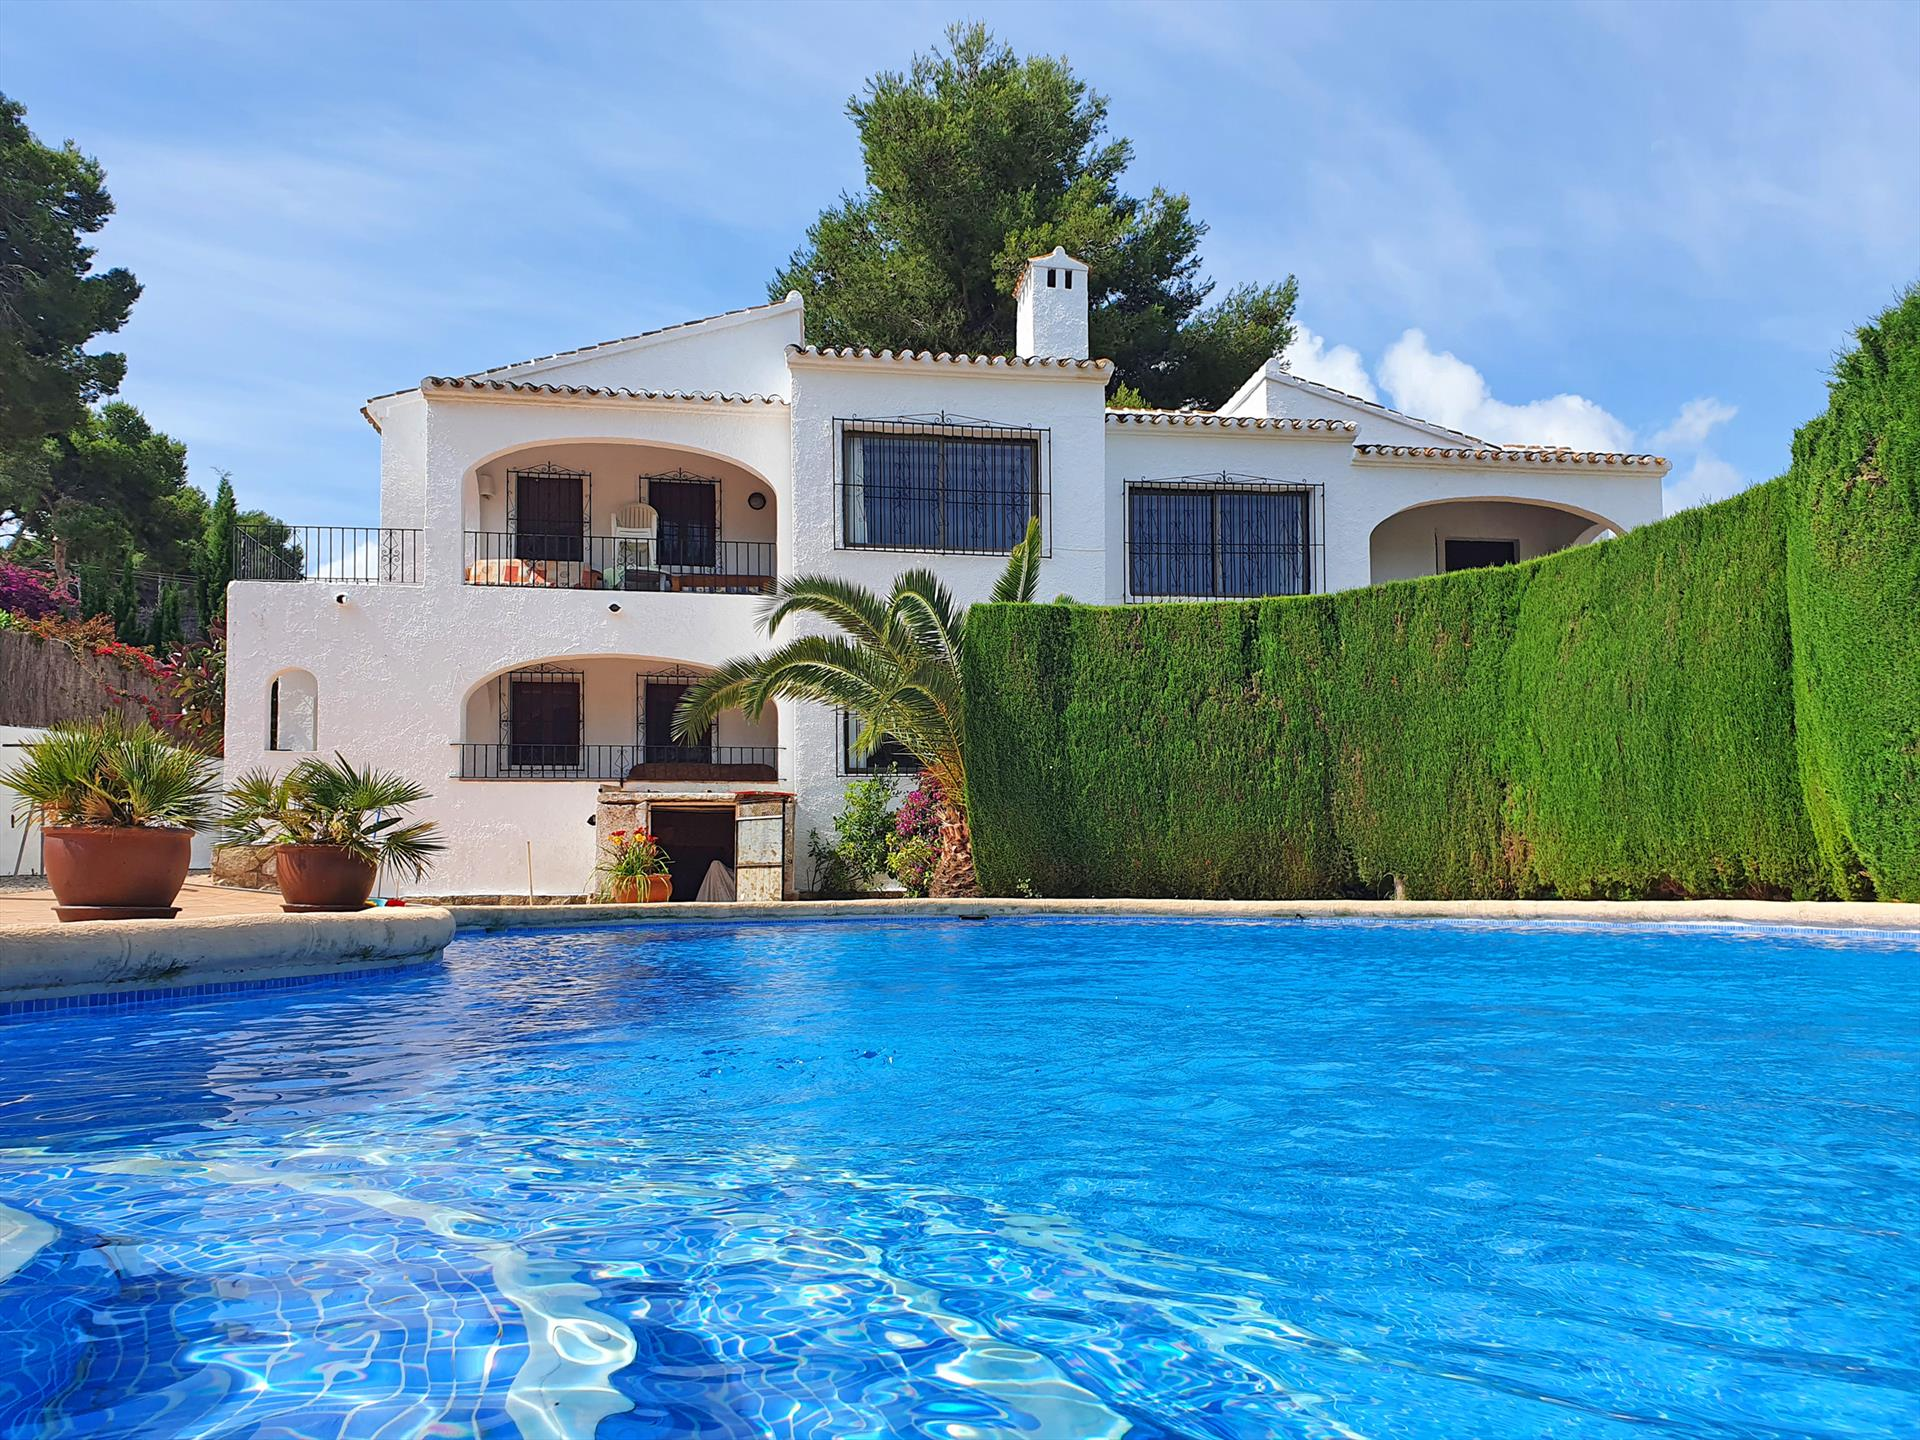 Finca Campo Bello Apartamento B,Finca Campo Bello is a lovely complex in Javea consisting of a total of 5 appartments for 4 or 6 persons each, it has a.....